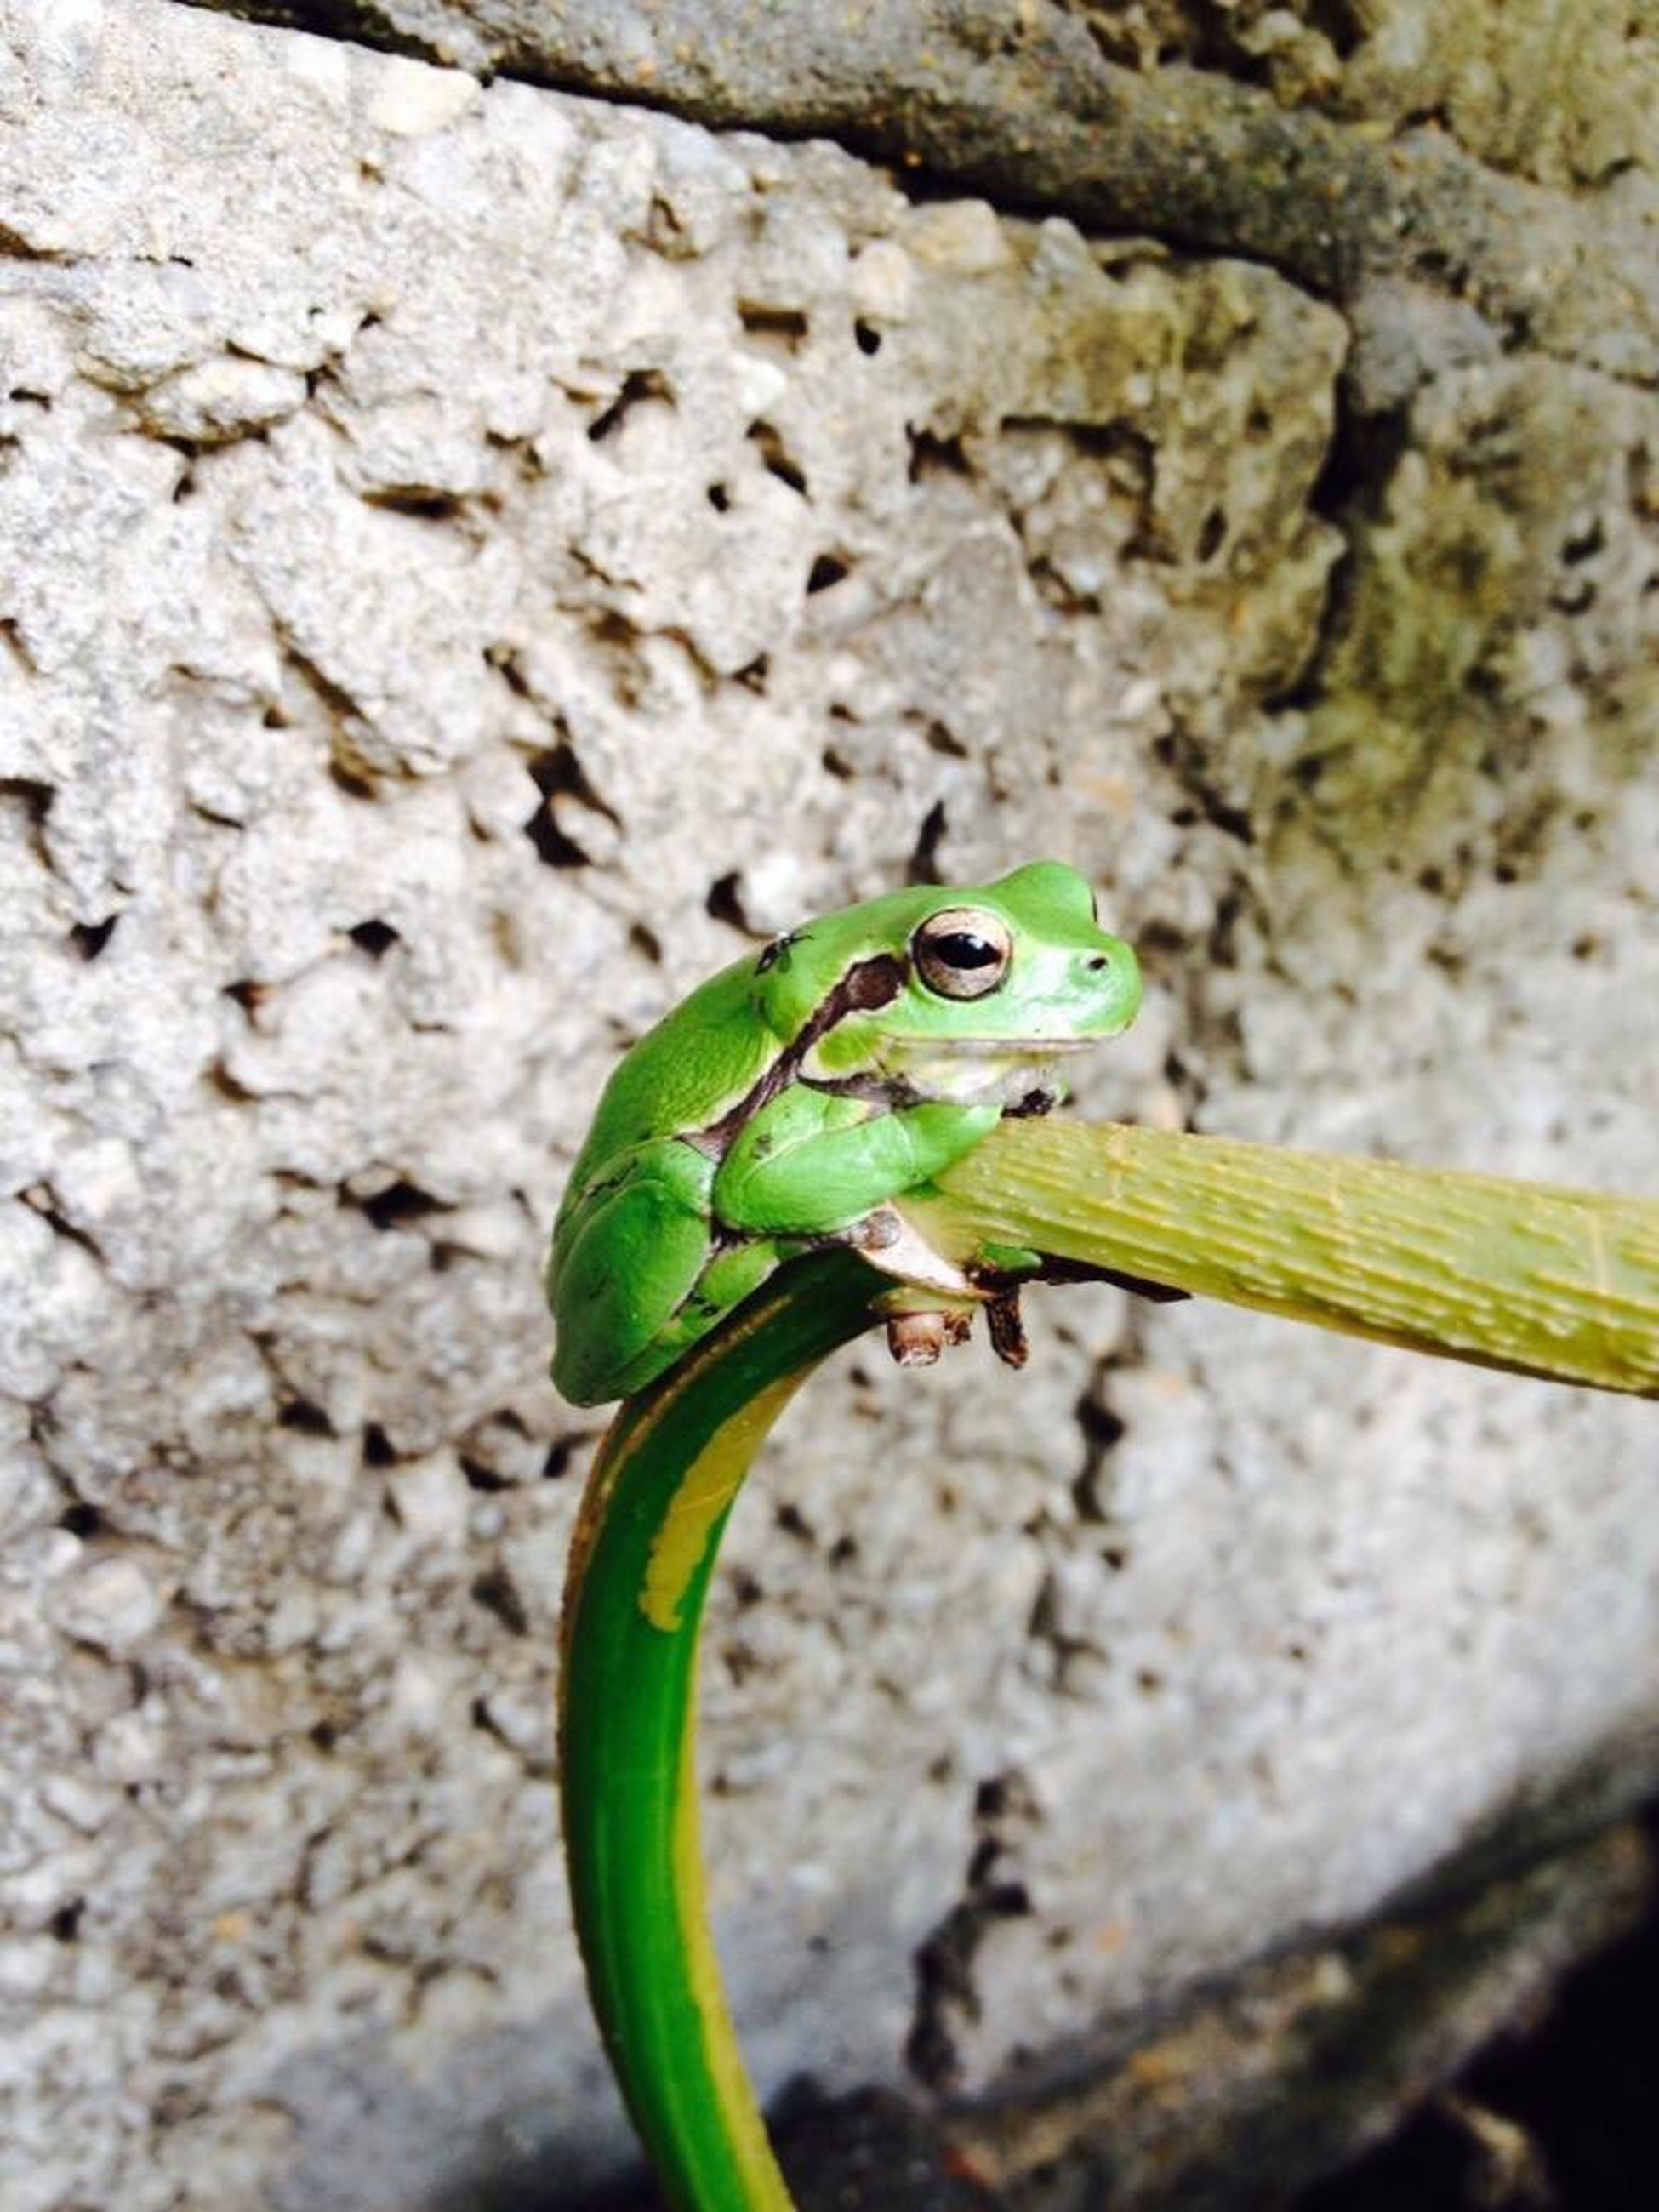 one animal, animals in the wild, animal themes, animal wildlife, close-up, outdoors, no people, nature, day, green color, insect, reptile, portrait, chameleon